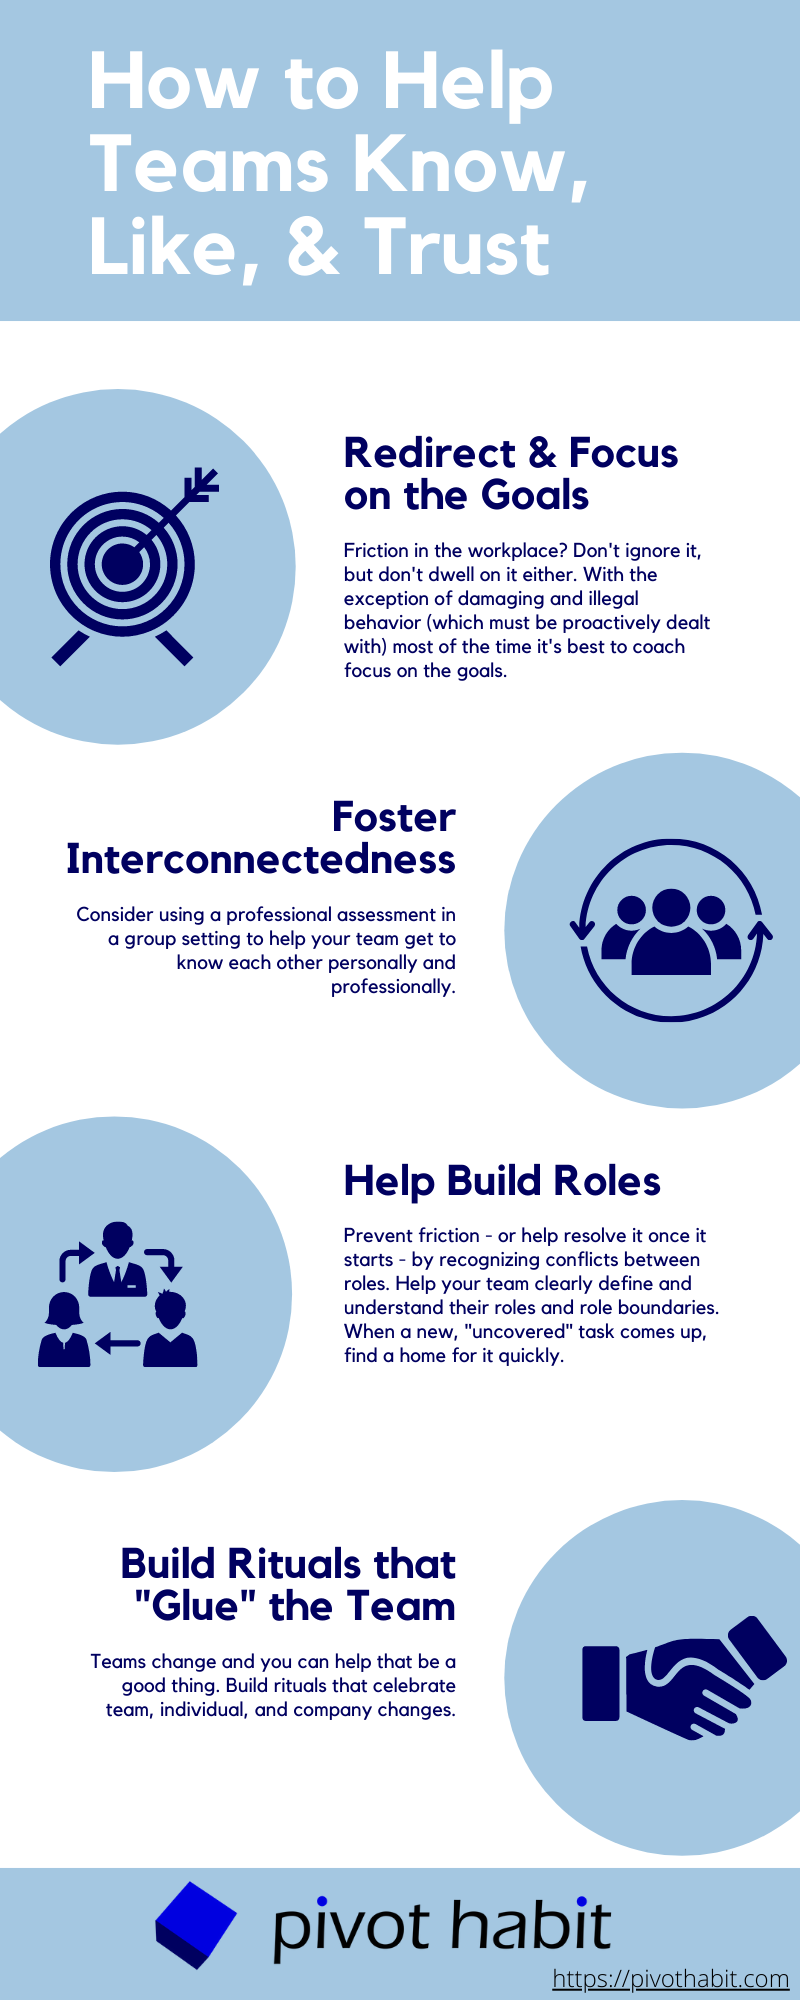 [Infographic] Here are four tips for how to encourage better teamwork.